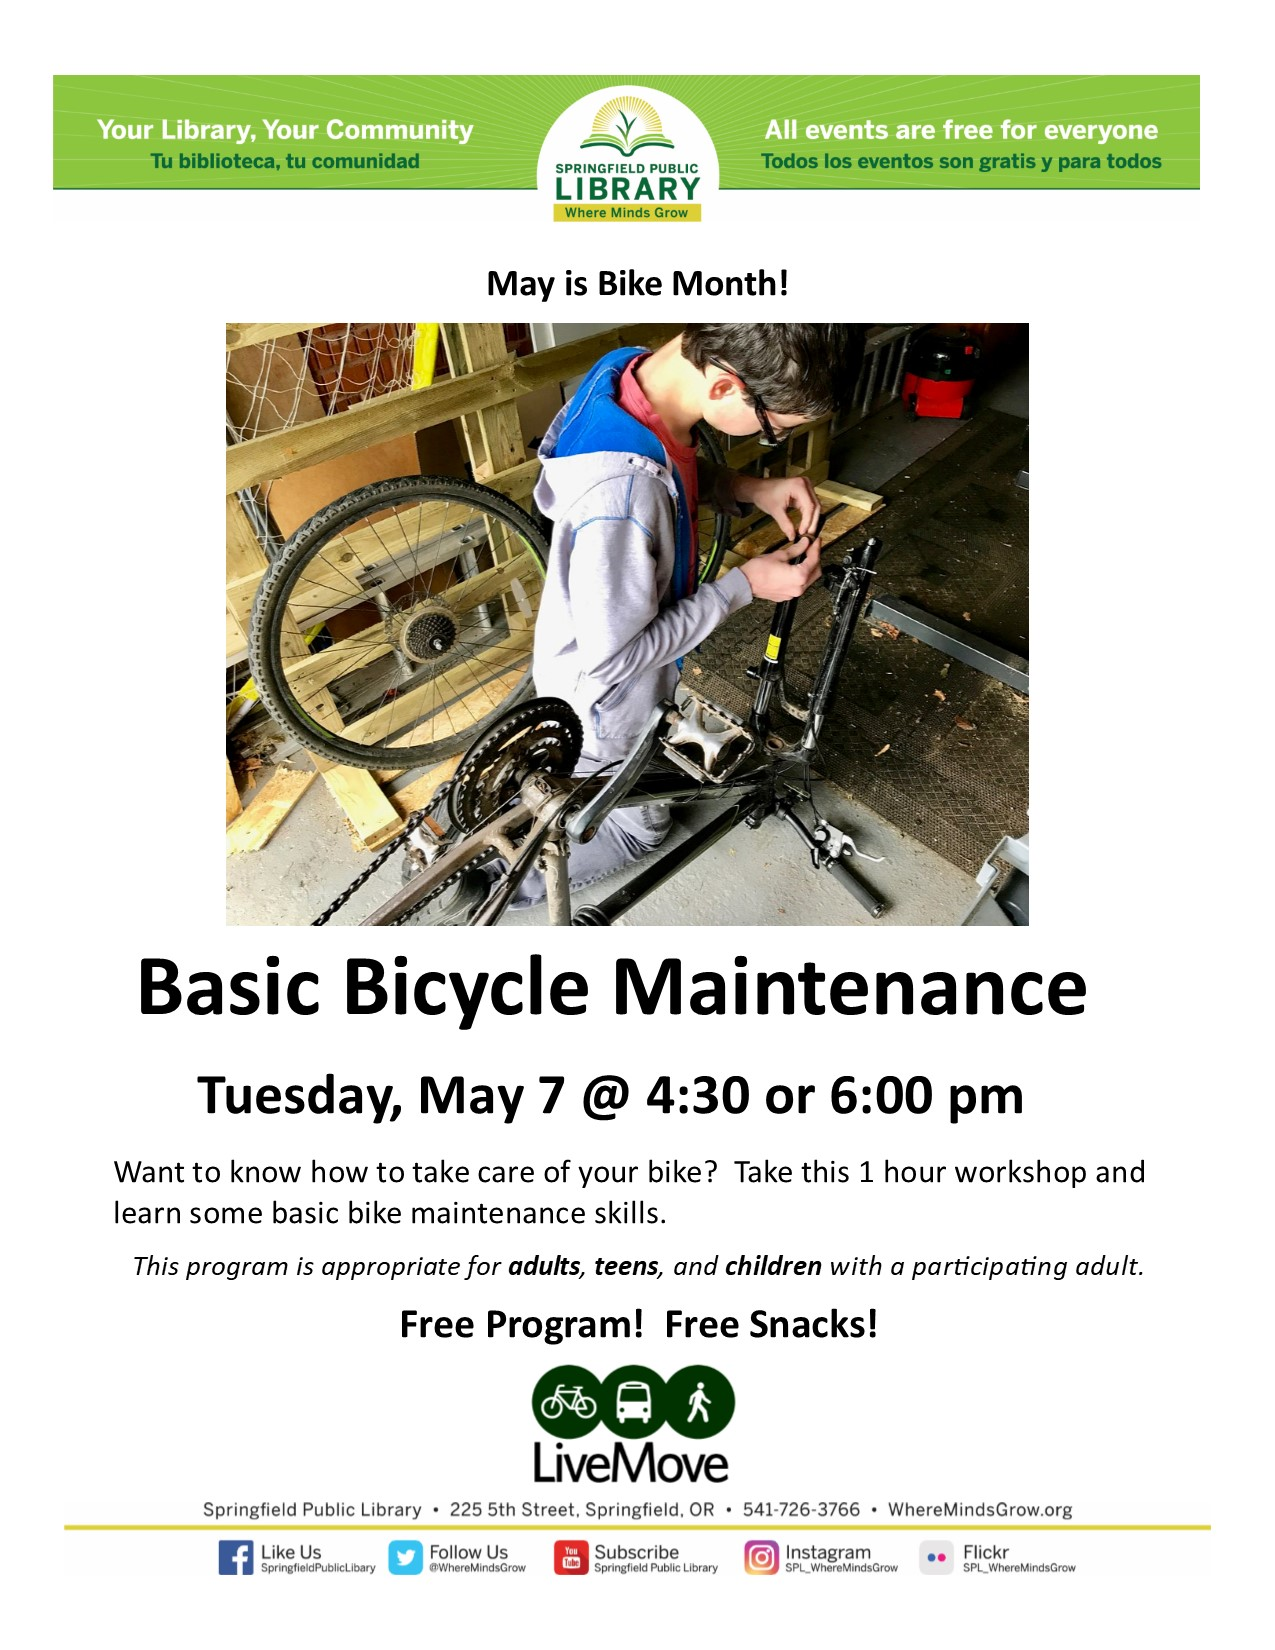 Basic Bicycle Maintenance Event Poster